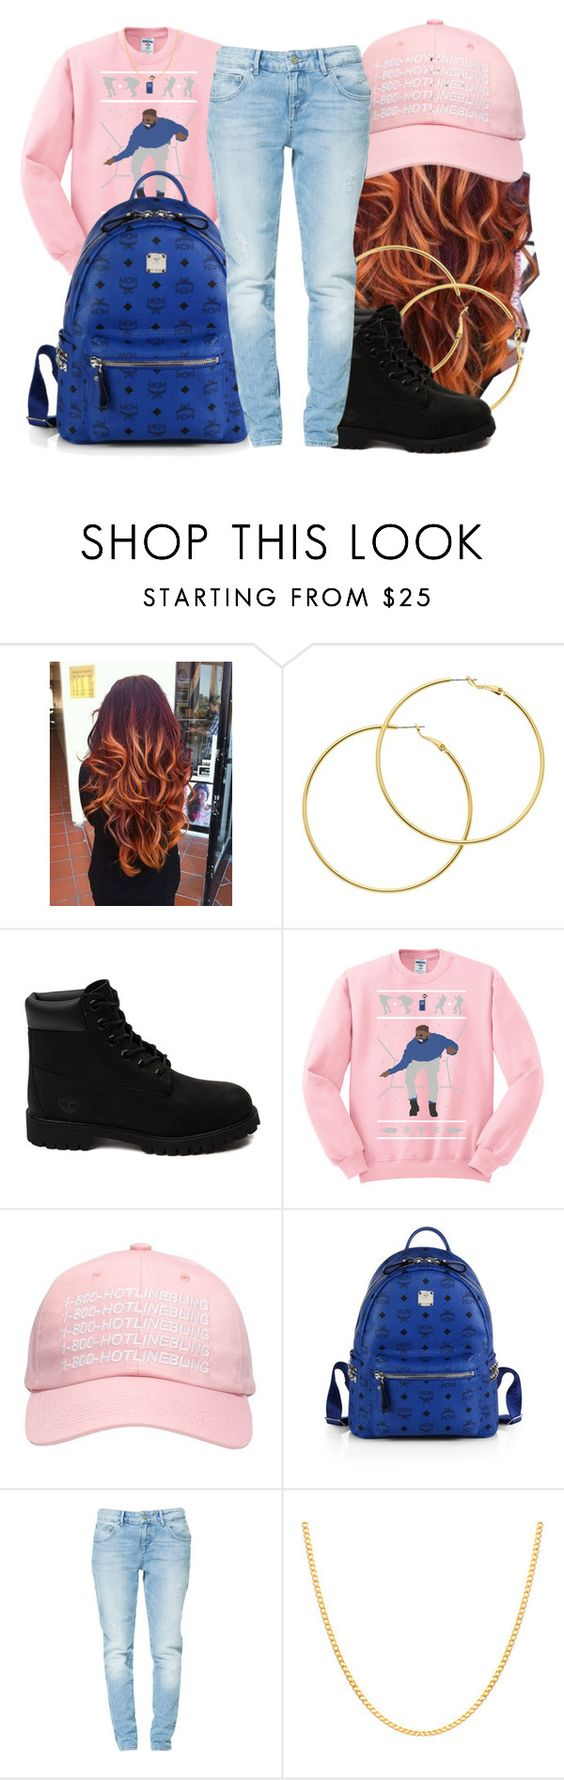 """""""Untitled #297"""" by ashcake-wilson ❤ liked on Polyvore featuring Melissa Odabash, Timberland, October's Very Own, MCM, Zara and Sterling Essentials"""